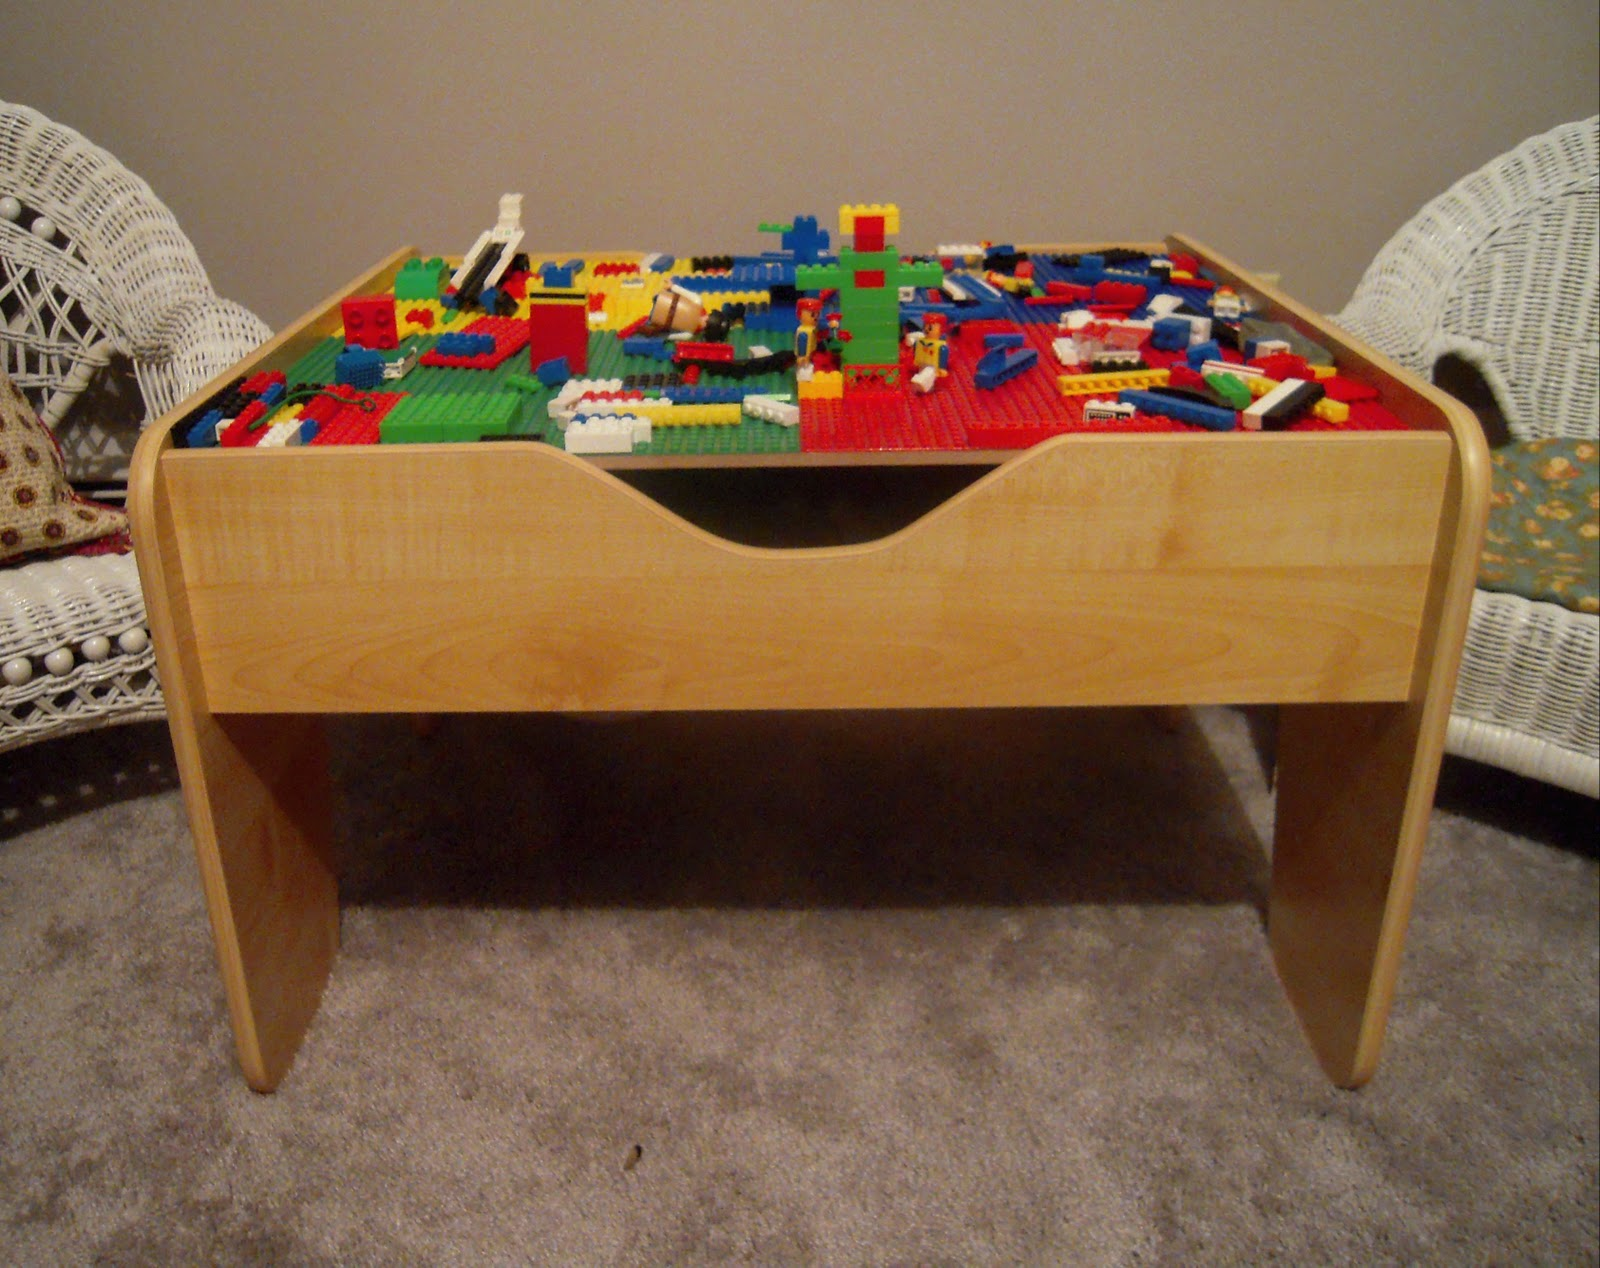 Marvelously Messy : KidKraft 2 in 1 Lego Table Review